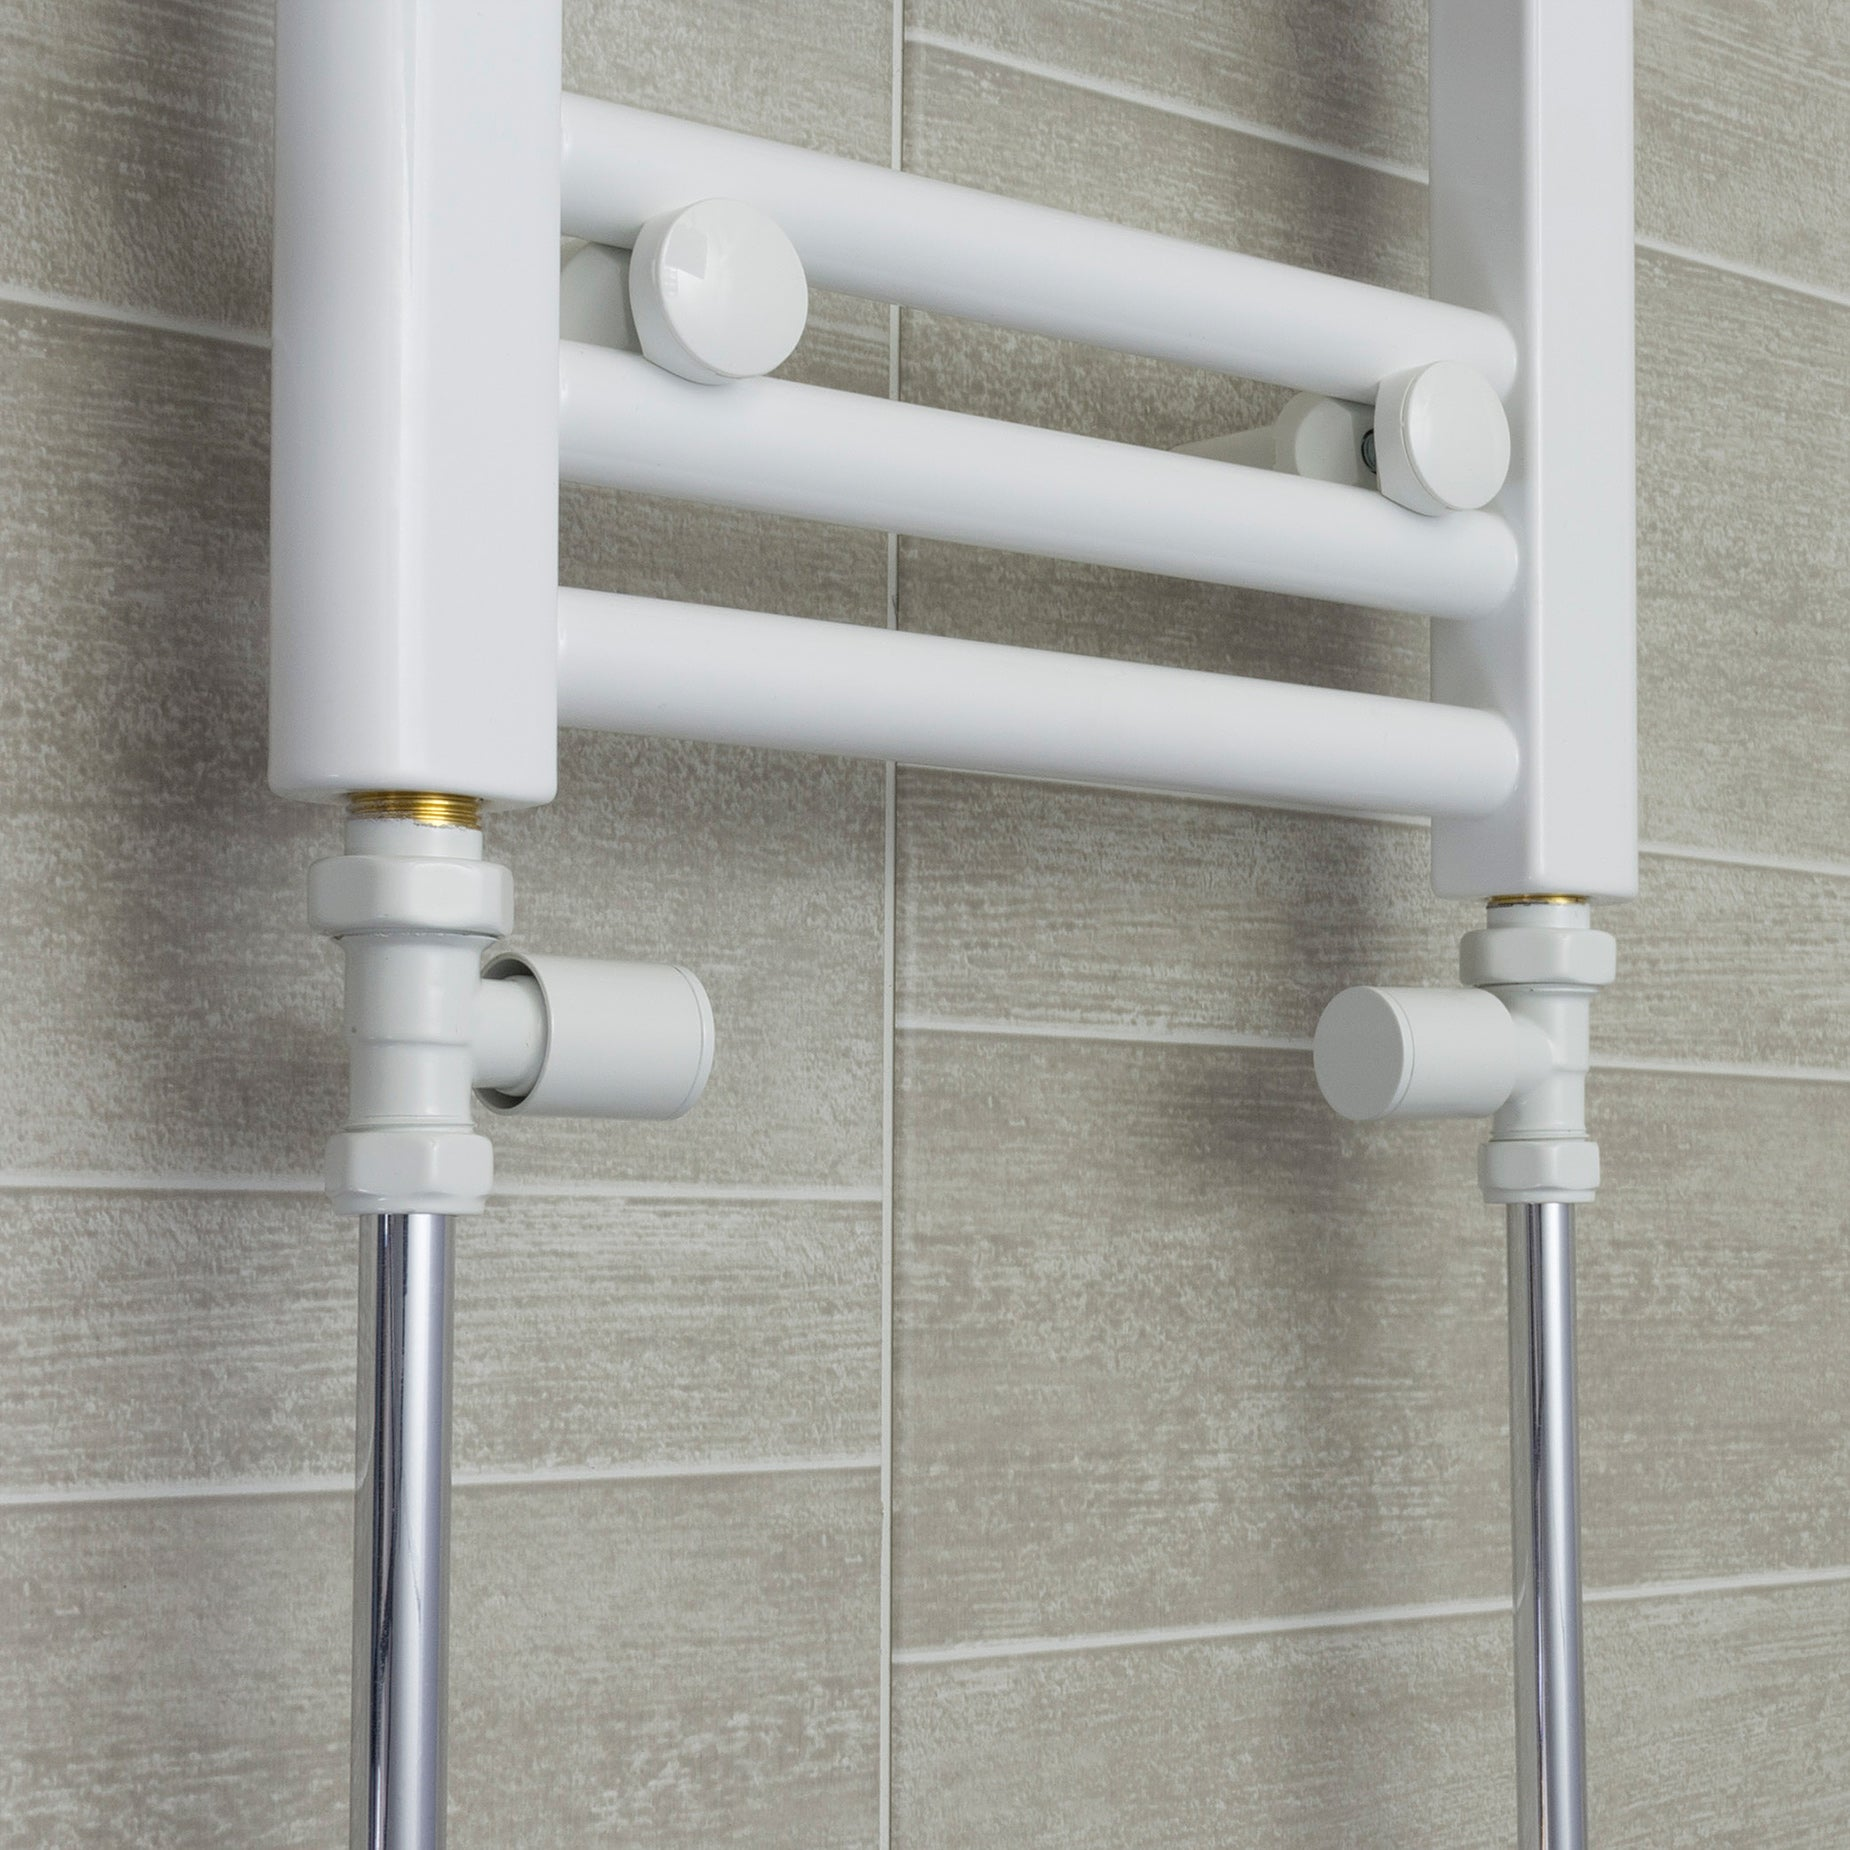 700mm Wide 400mm High Flat White Heated Towel Rail Radiator HTR